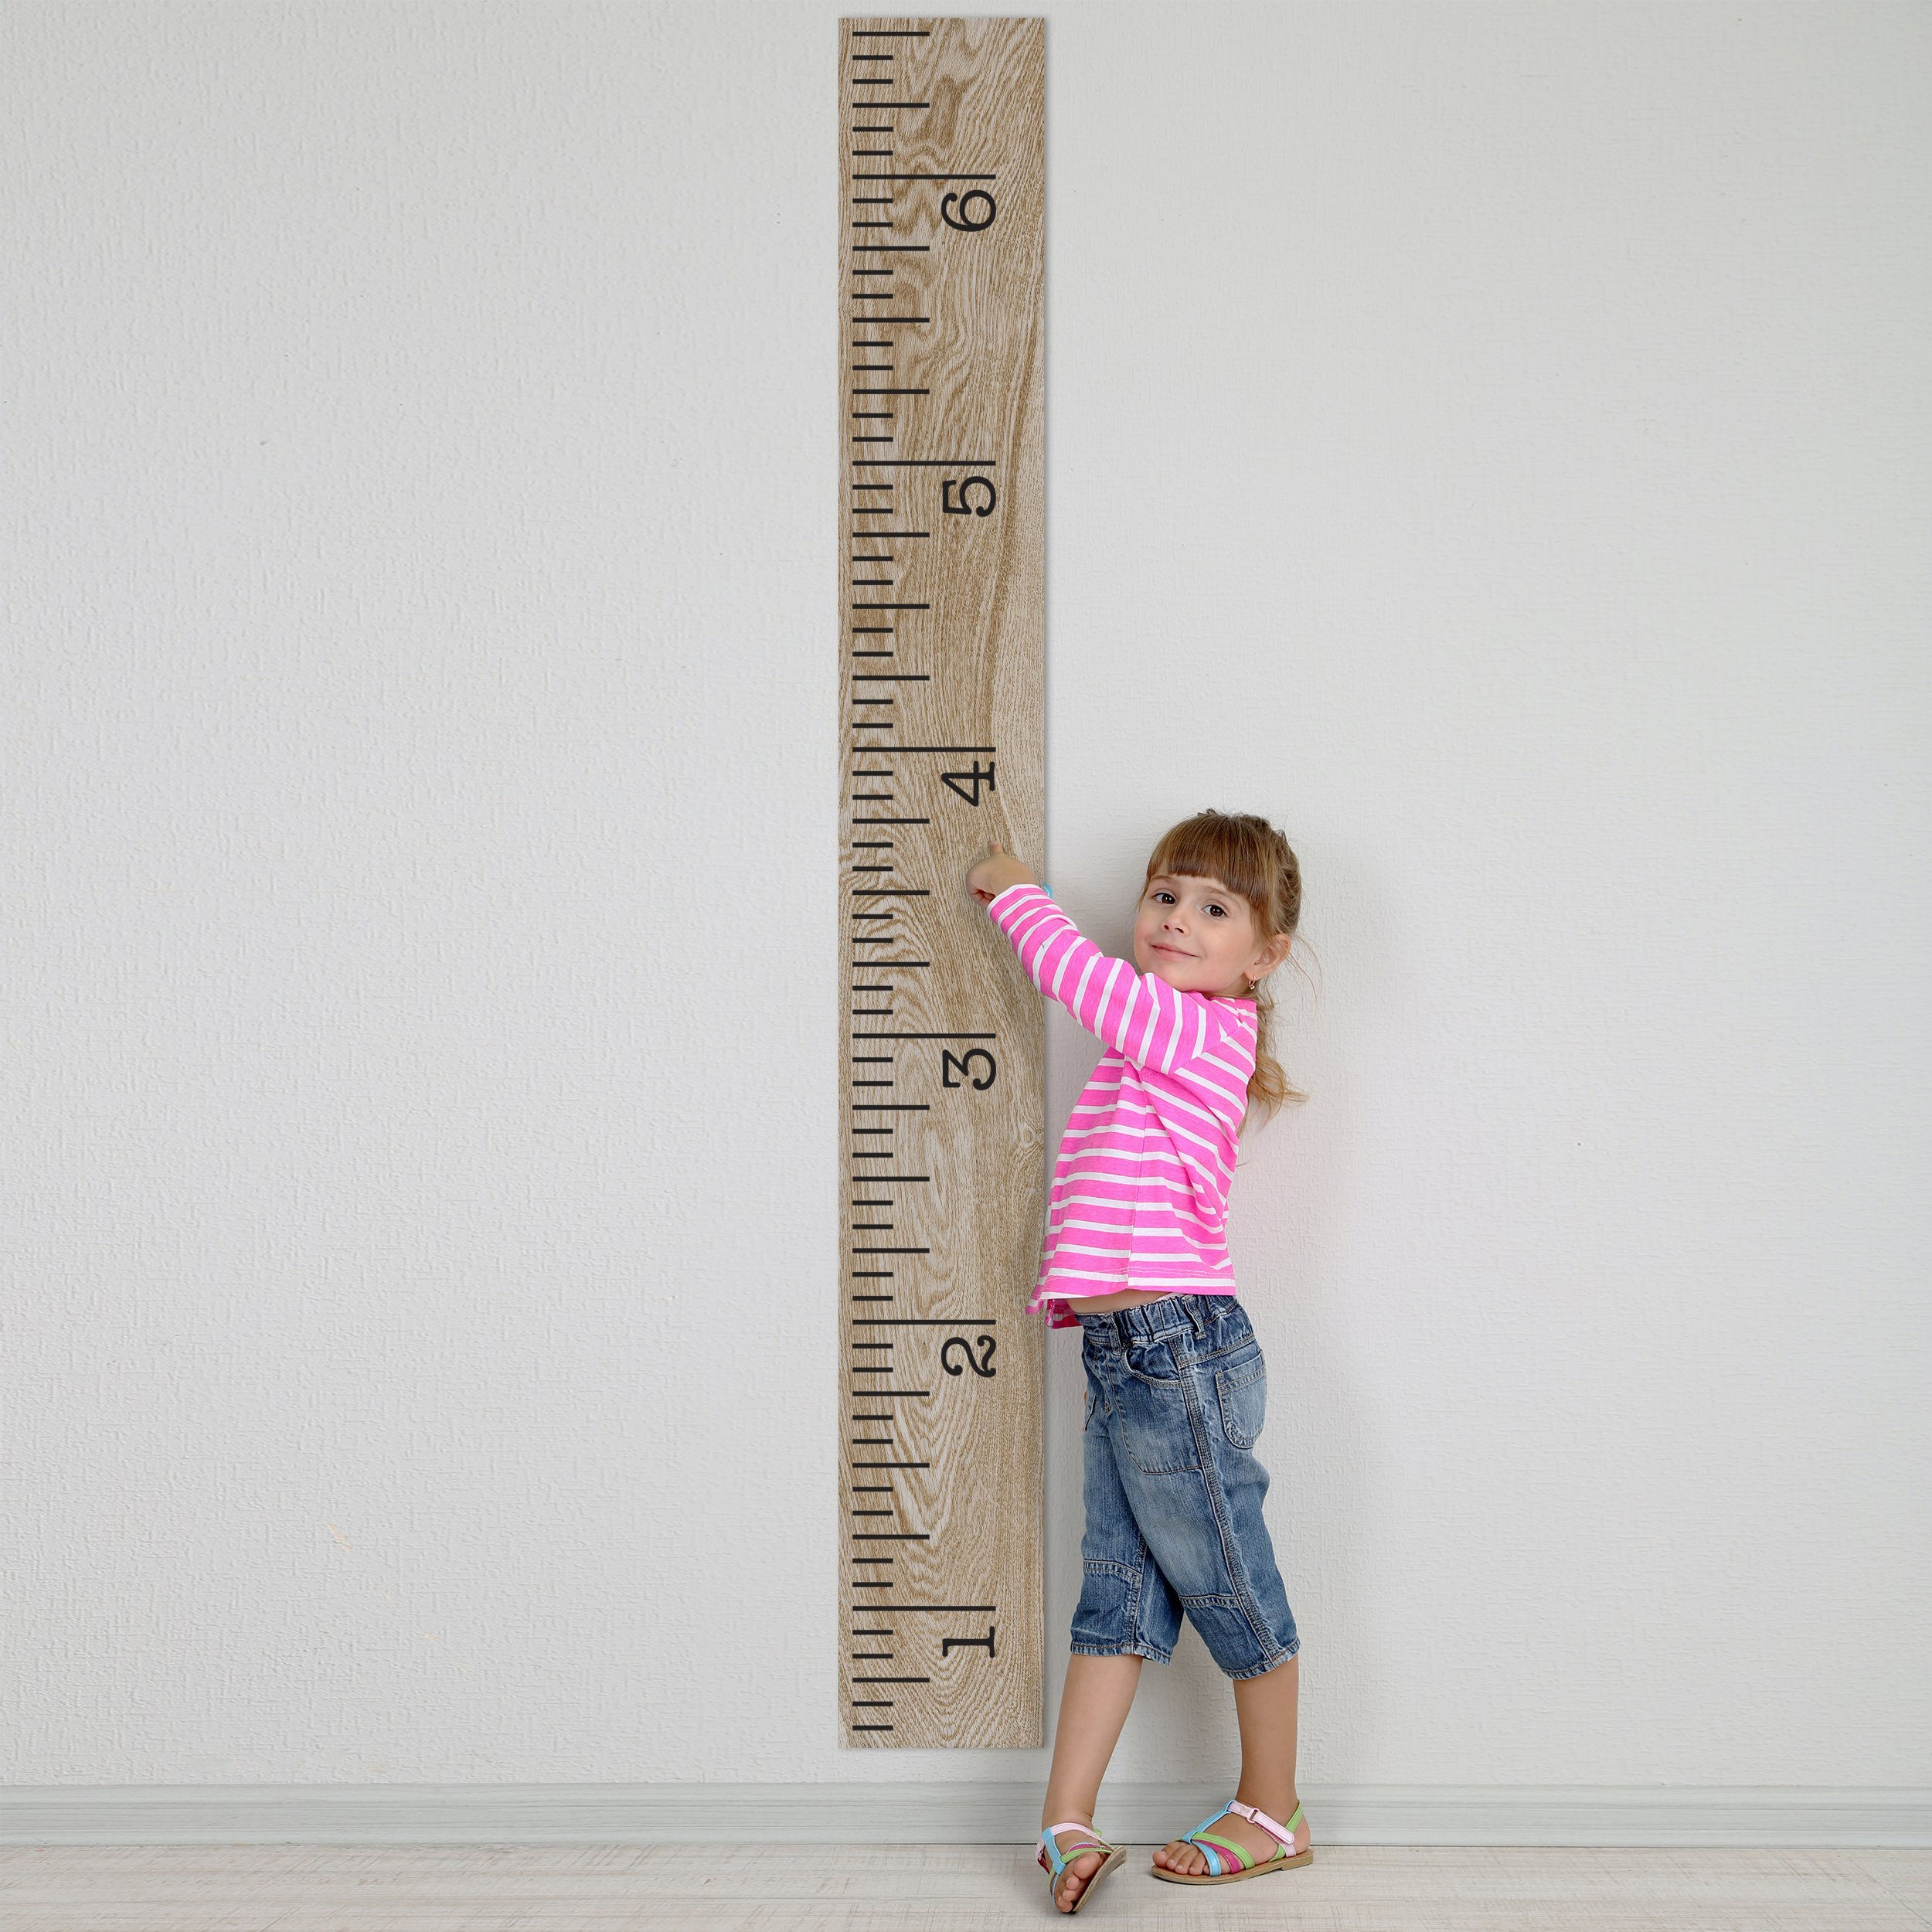 Vinyl Growth Chart   Single Transfer for EASY Application   Kids DIY Height Wall Ruler Kit   Large Measuring Tape Sticker Number Decal Wood Measure Chart Wooden Board Children Decor Growing Baby Room by Decals for the Wall (Image #3)